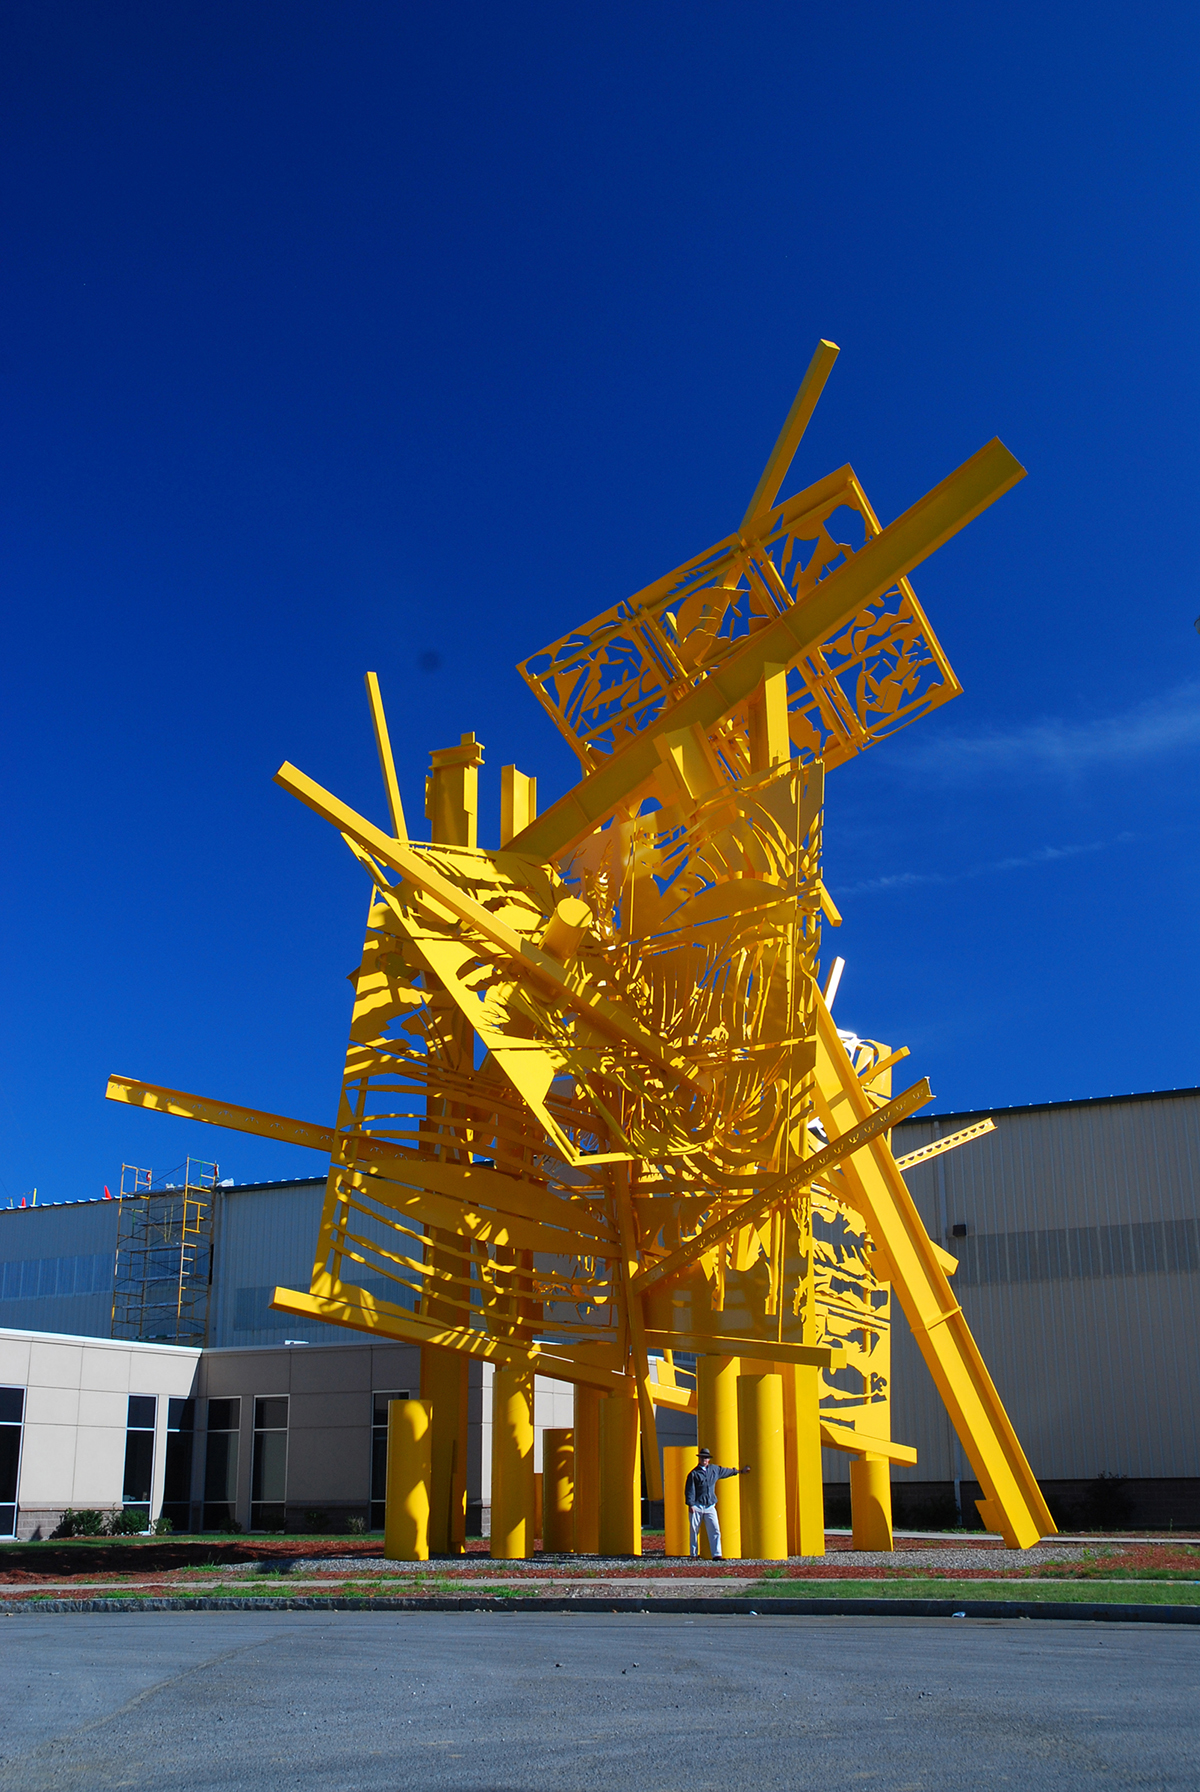 A yellow sculpture by Albert Paley